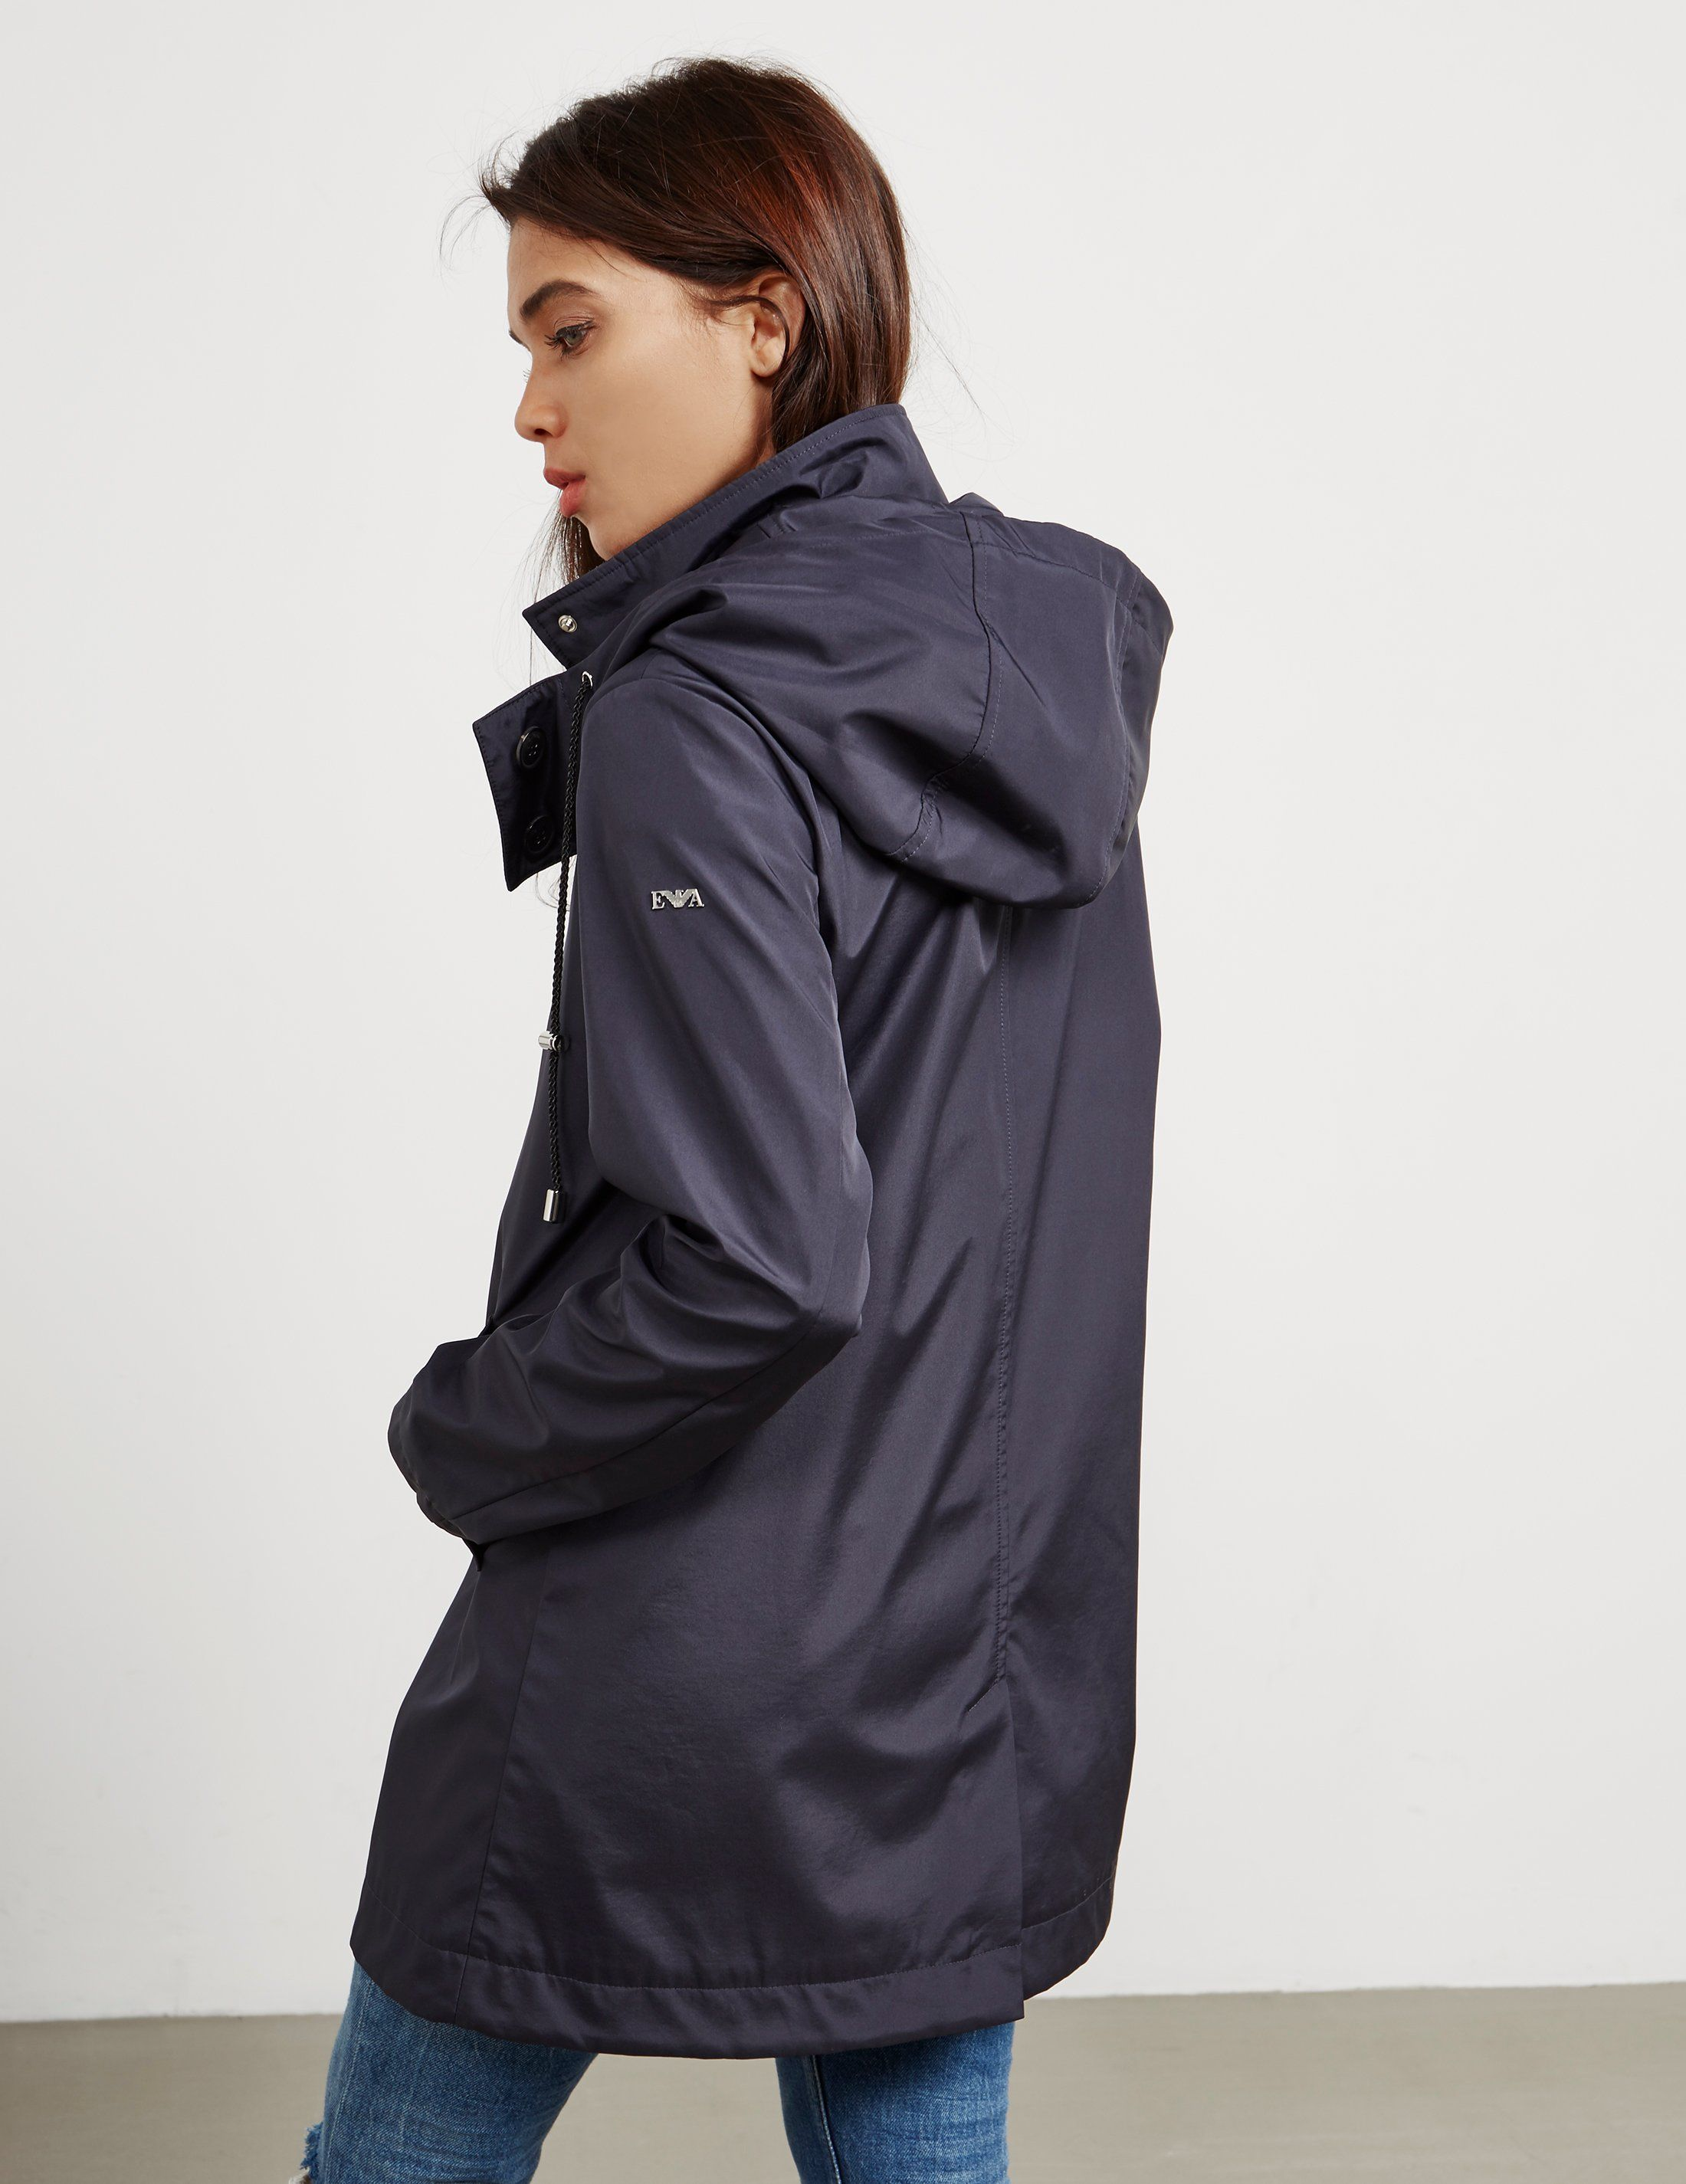 Emporio Armani Caban Padded Jacket - Online Exclusive